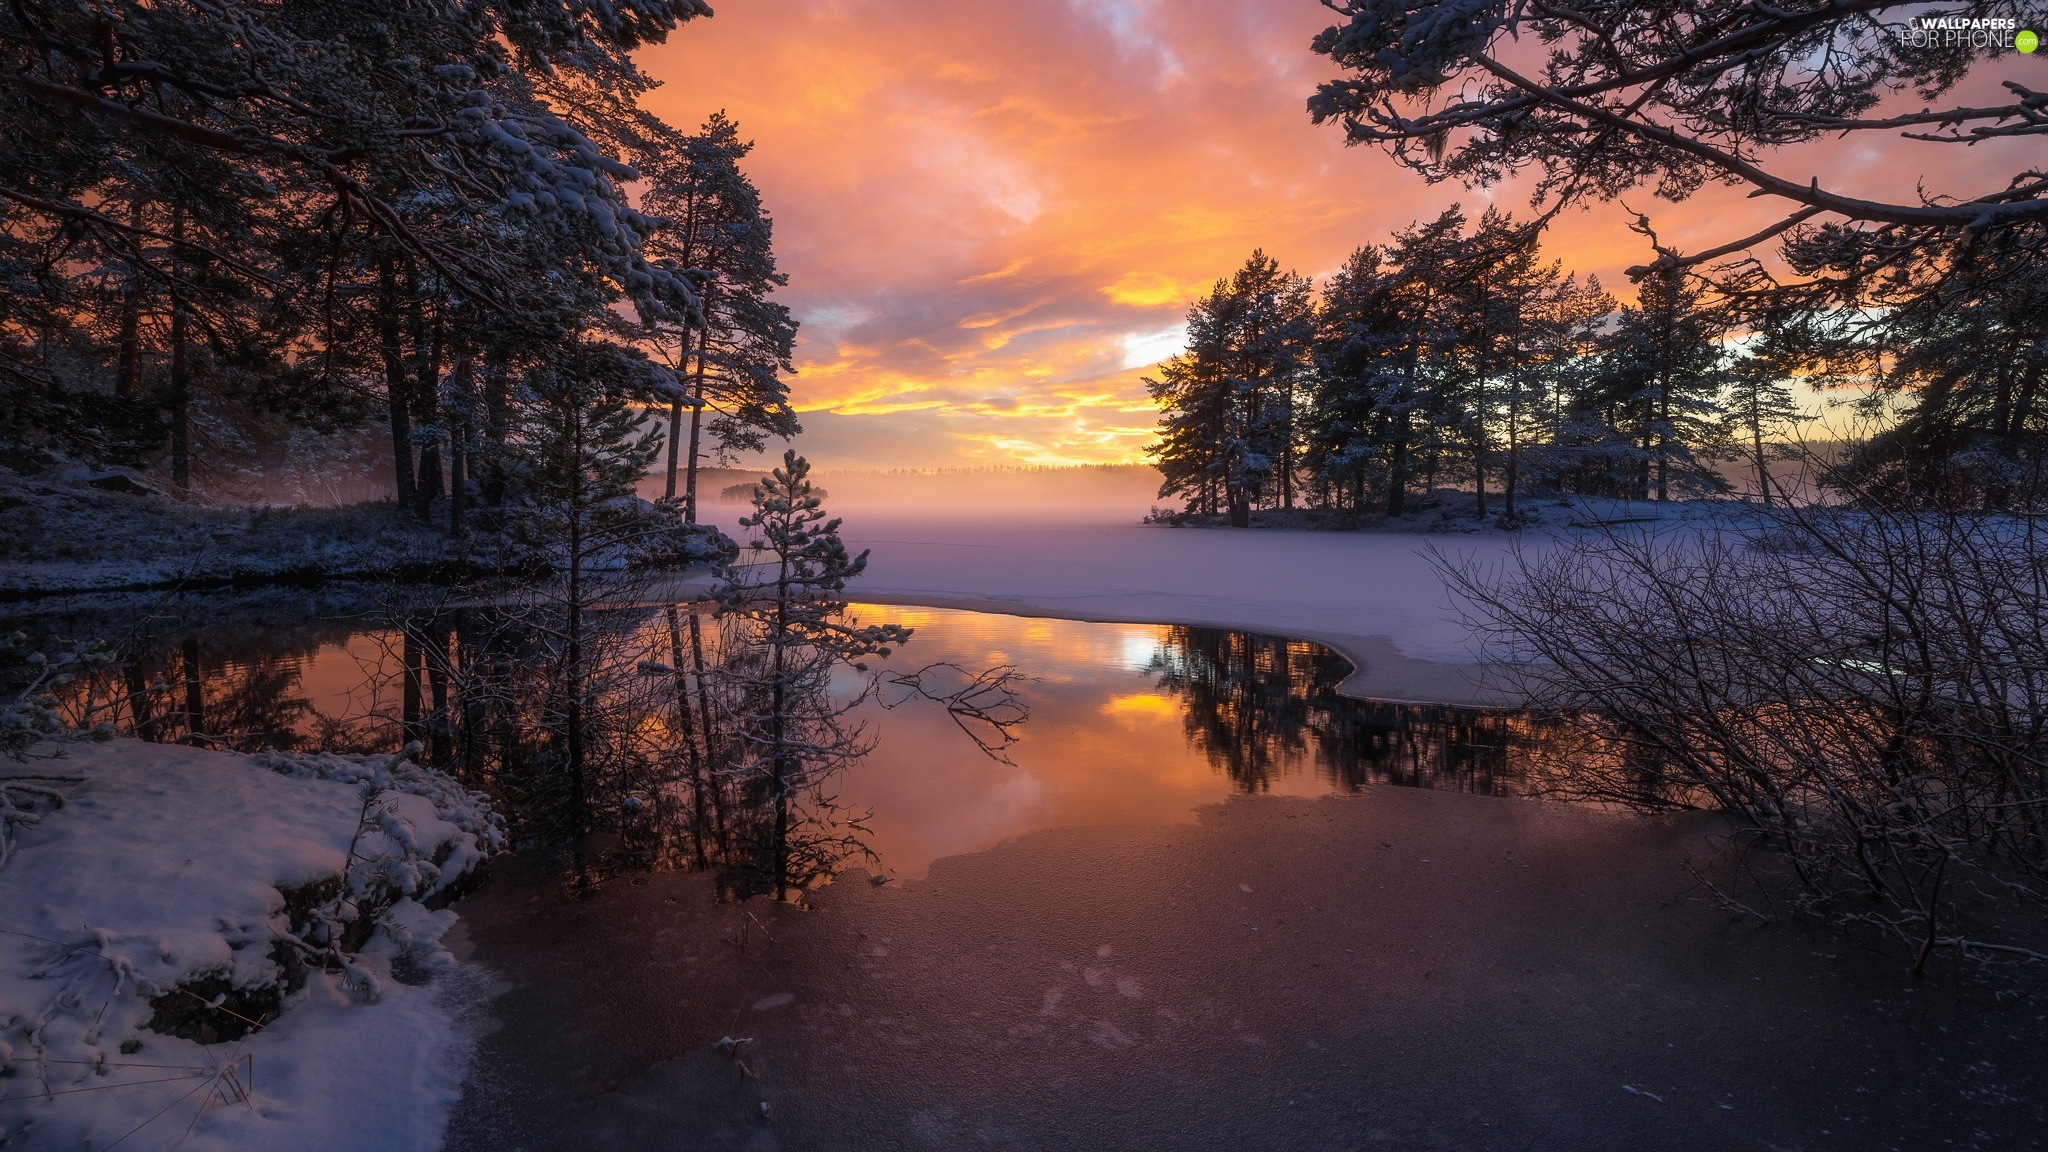 snow, winter, Icecream, lake, Ringerike, Norway, viewes, Great Sunsets, trees